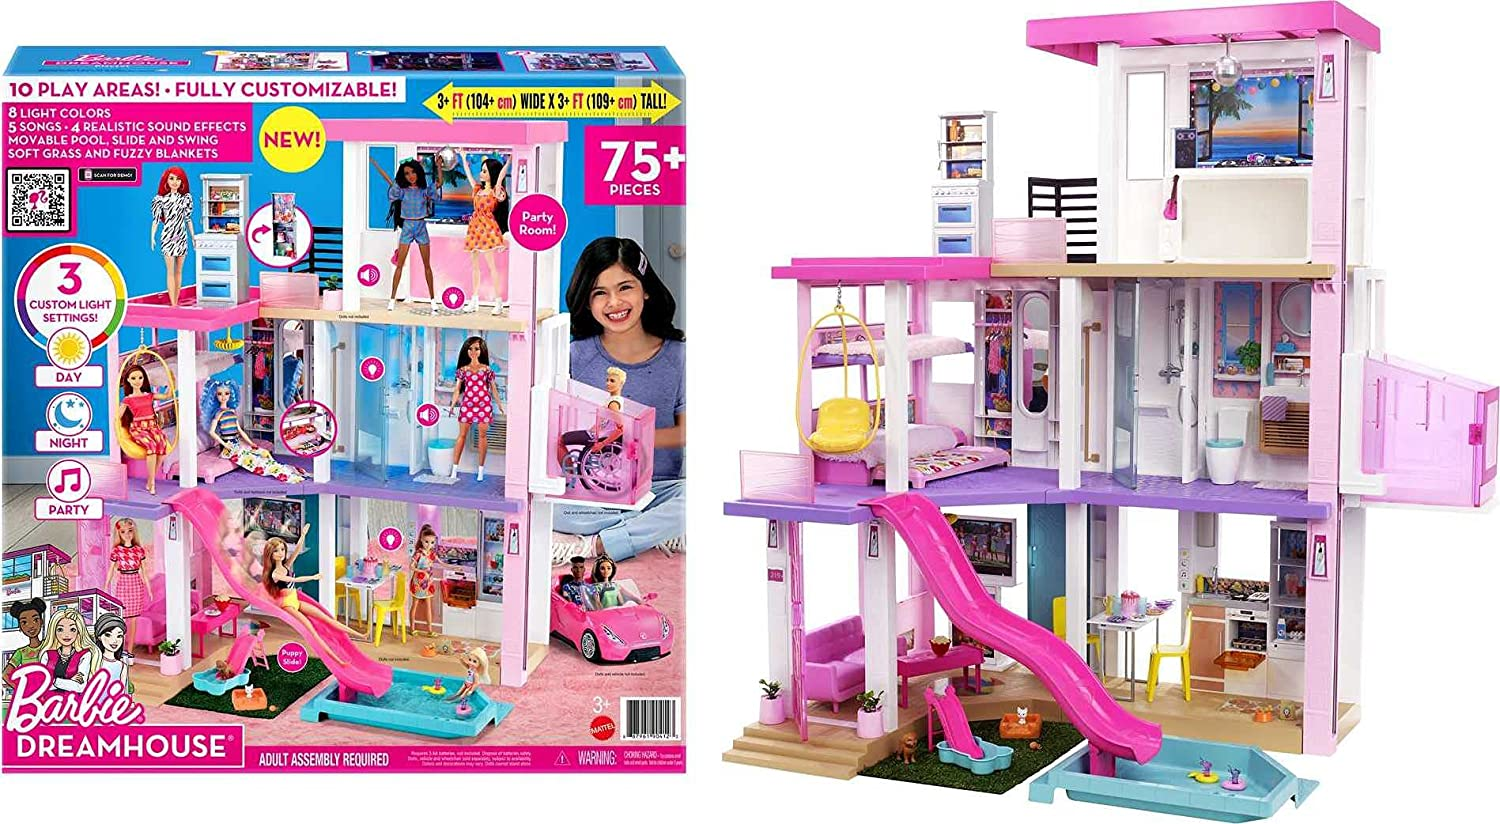 Barbie Dreamhouse Dollhouse (3.75-Ft) - Assembled set and the Box